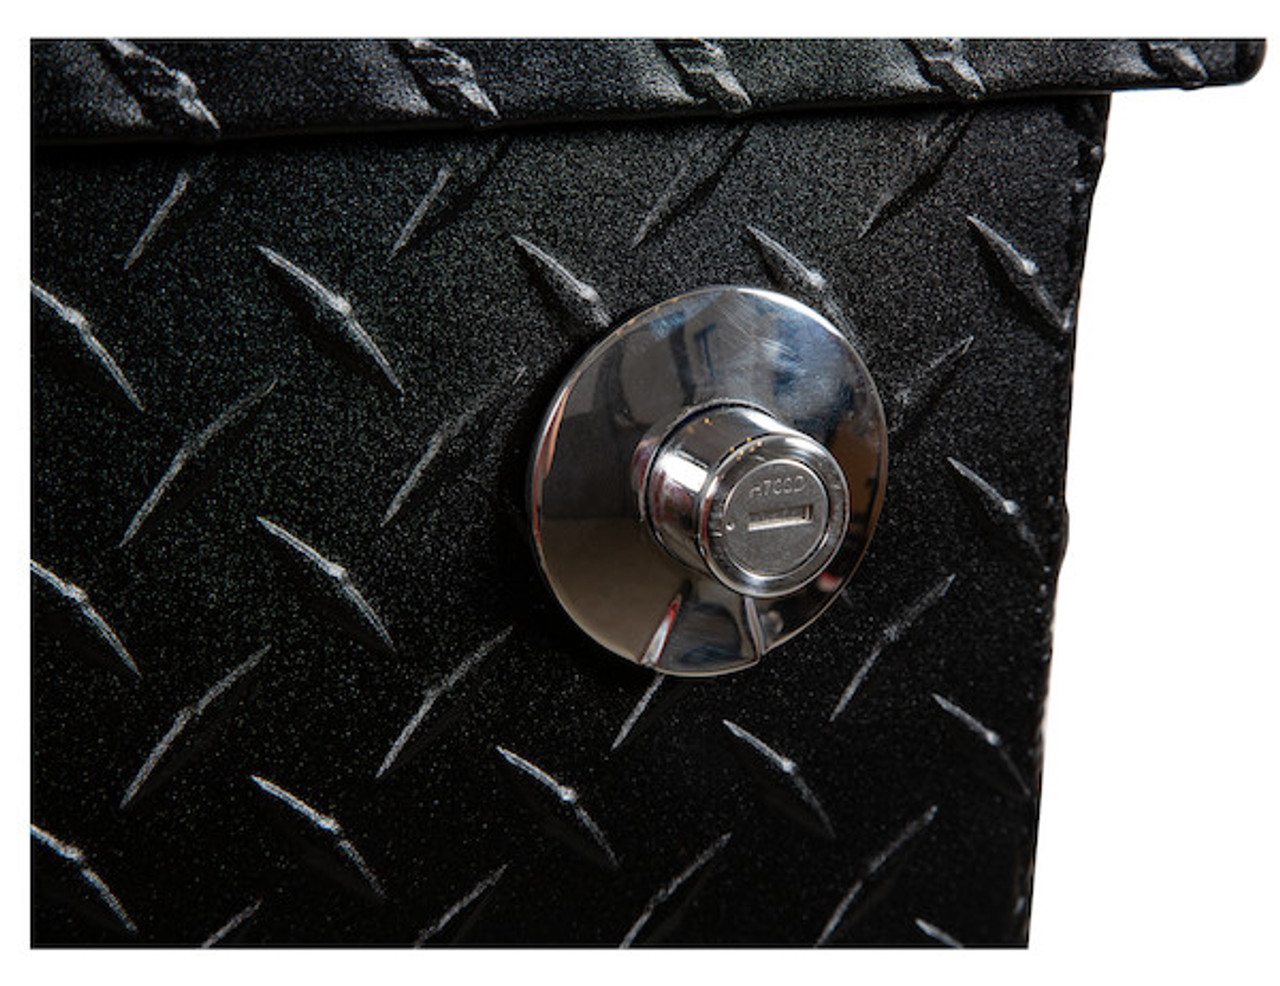 """1722010 BUYERS PRODUCTS TEXTURED MATTE BLACK DIAMOND TREAD ALUMINUM ALL-PURPOSE TOOLBOX WITH ANGLED BASE 19""""HX20""""DX47""""W Picture # 4"""